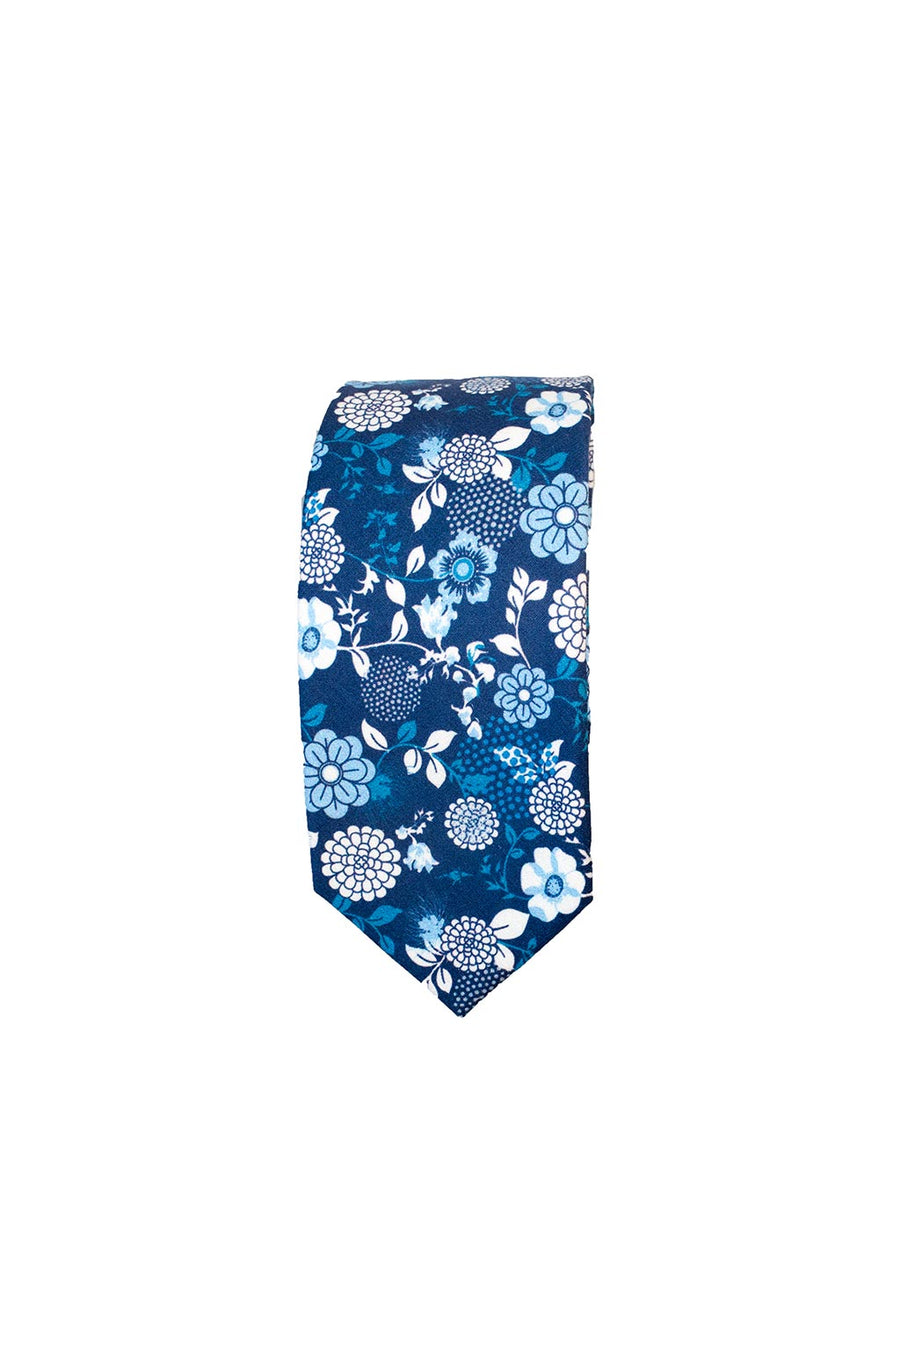 HEW Clothing Tie in Cara Floral Print